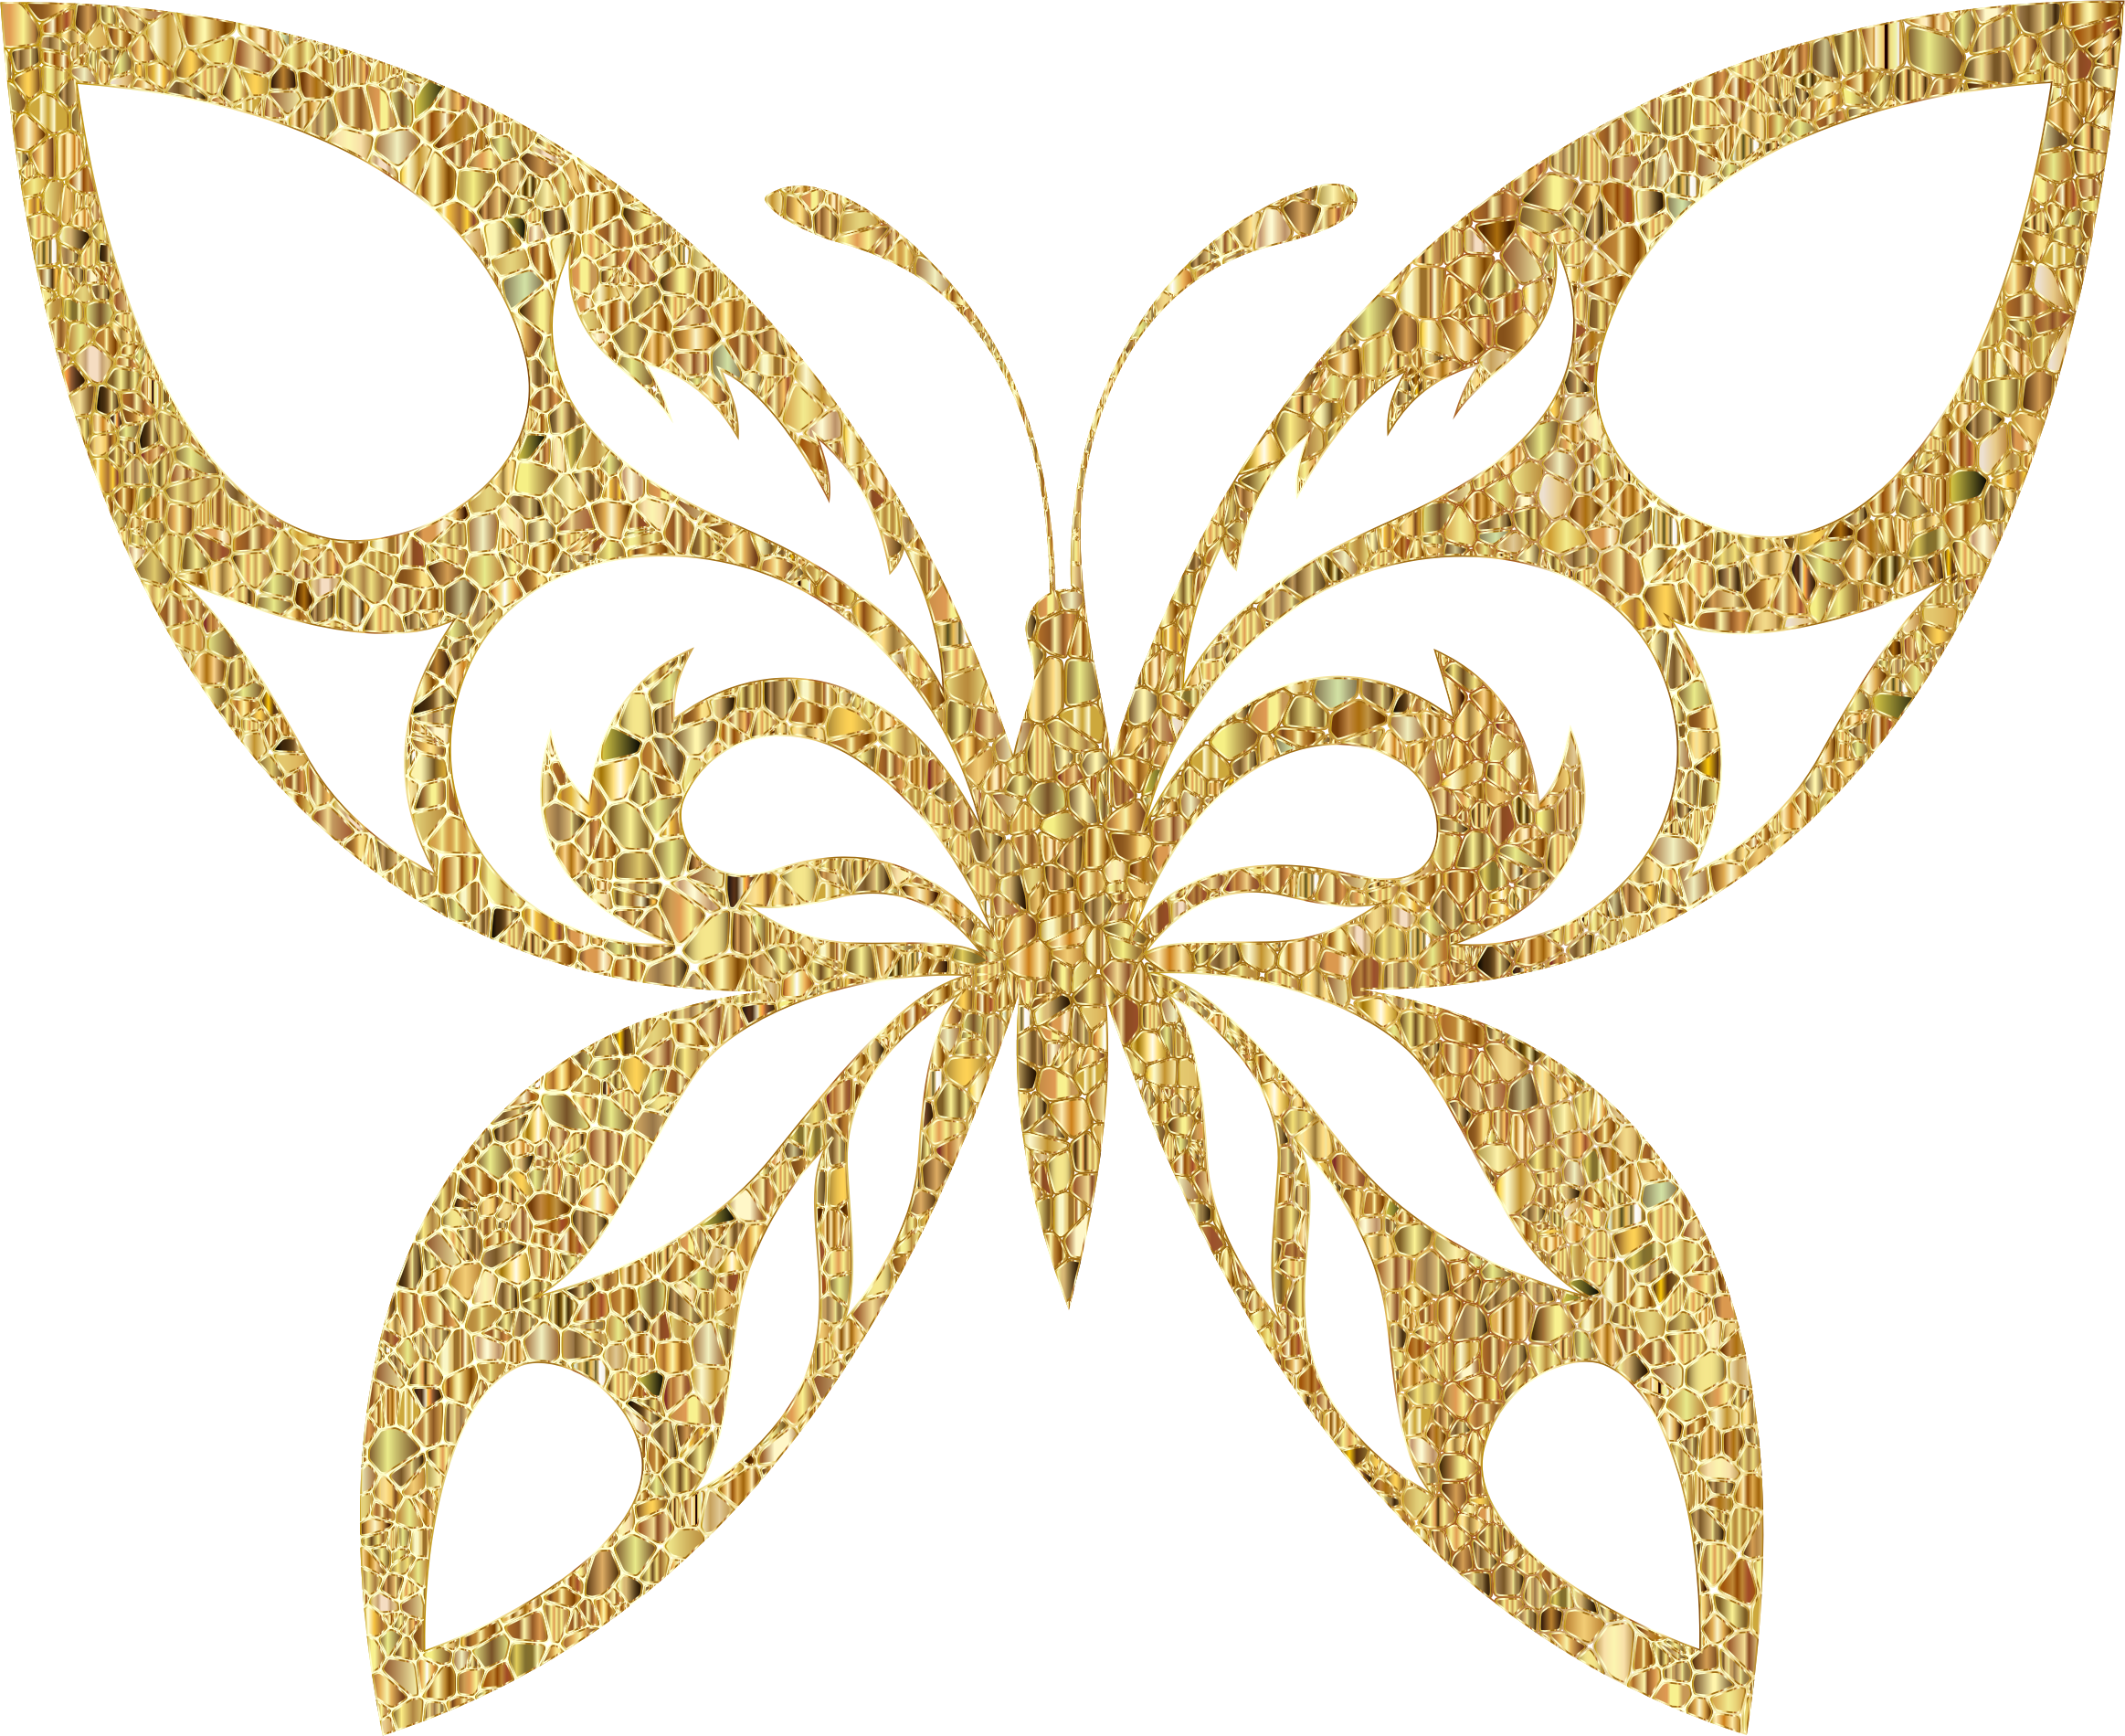 Gold Tiled Tribal Butterfly Silhouette Variation 2 No Background by GDJ